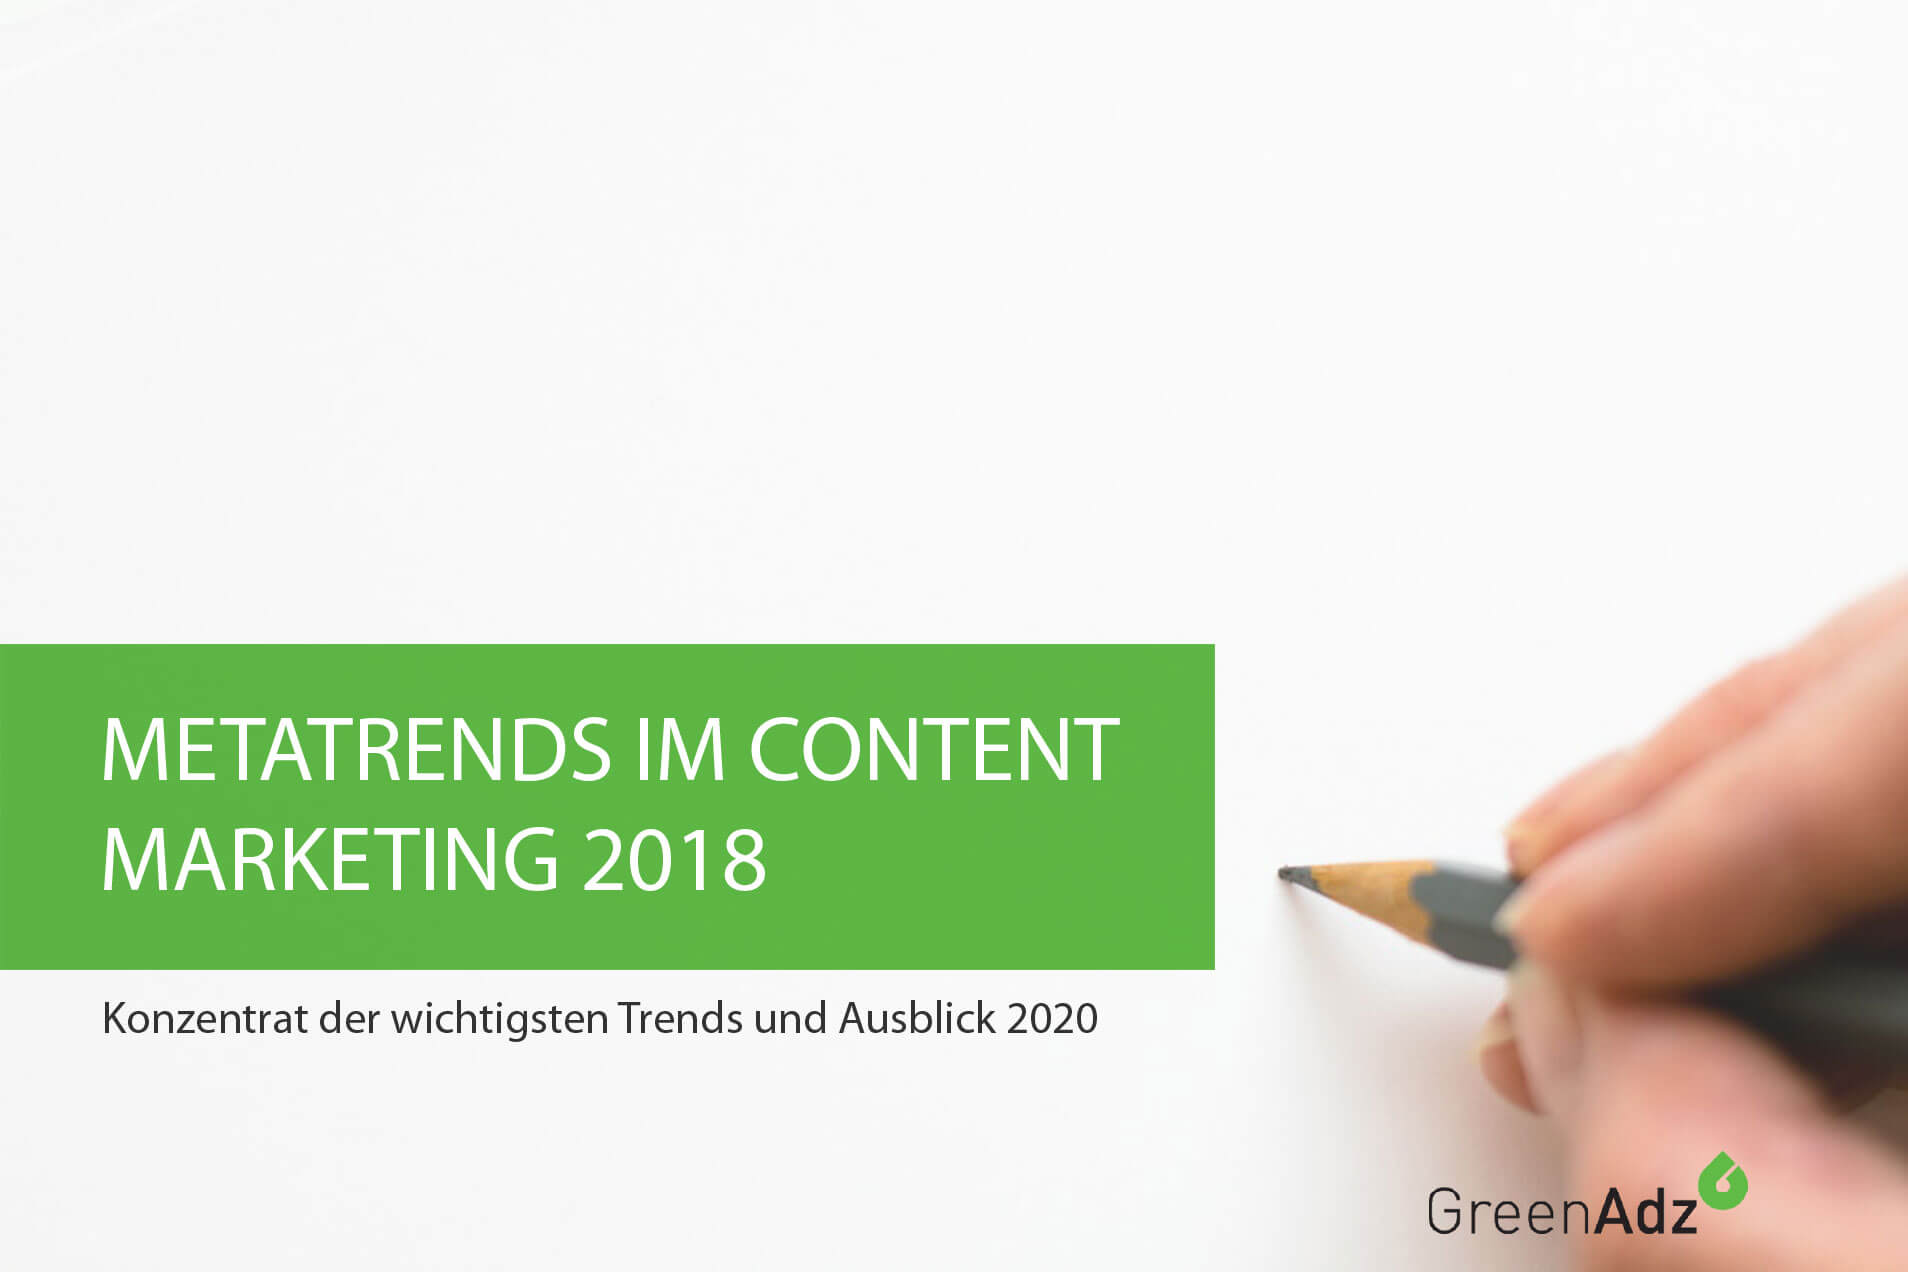 Content MArketing Trends 2018 und Ausblick 2020